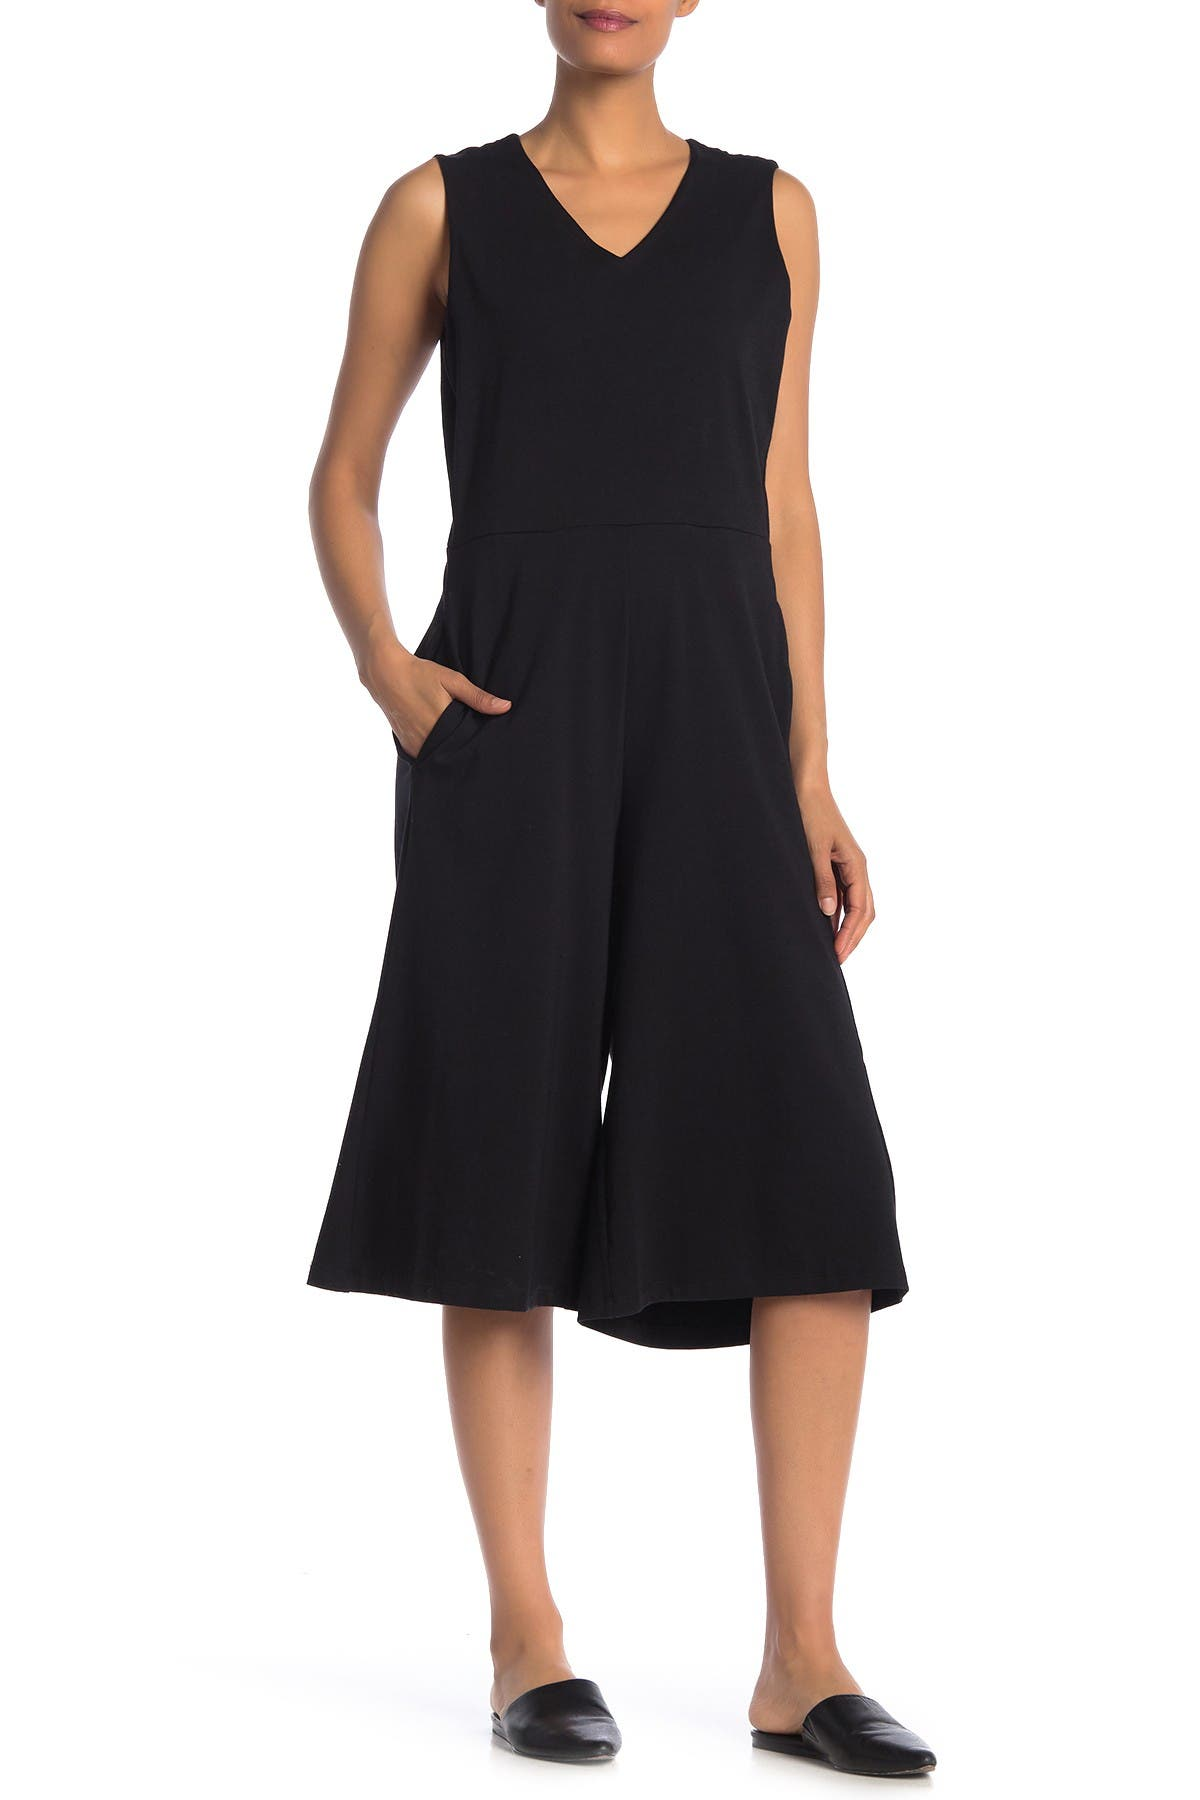 Image of Eileen Fisher Sleeveless Stretch Culotte Jumpsuit